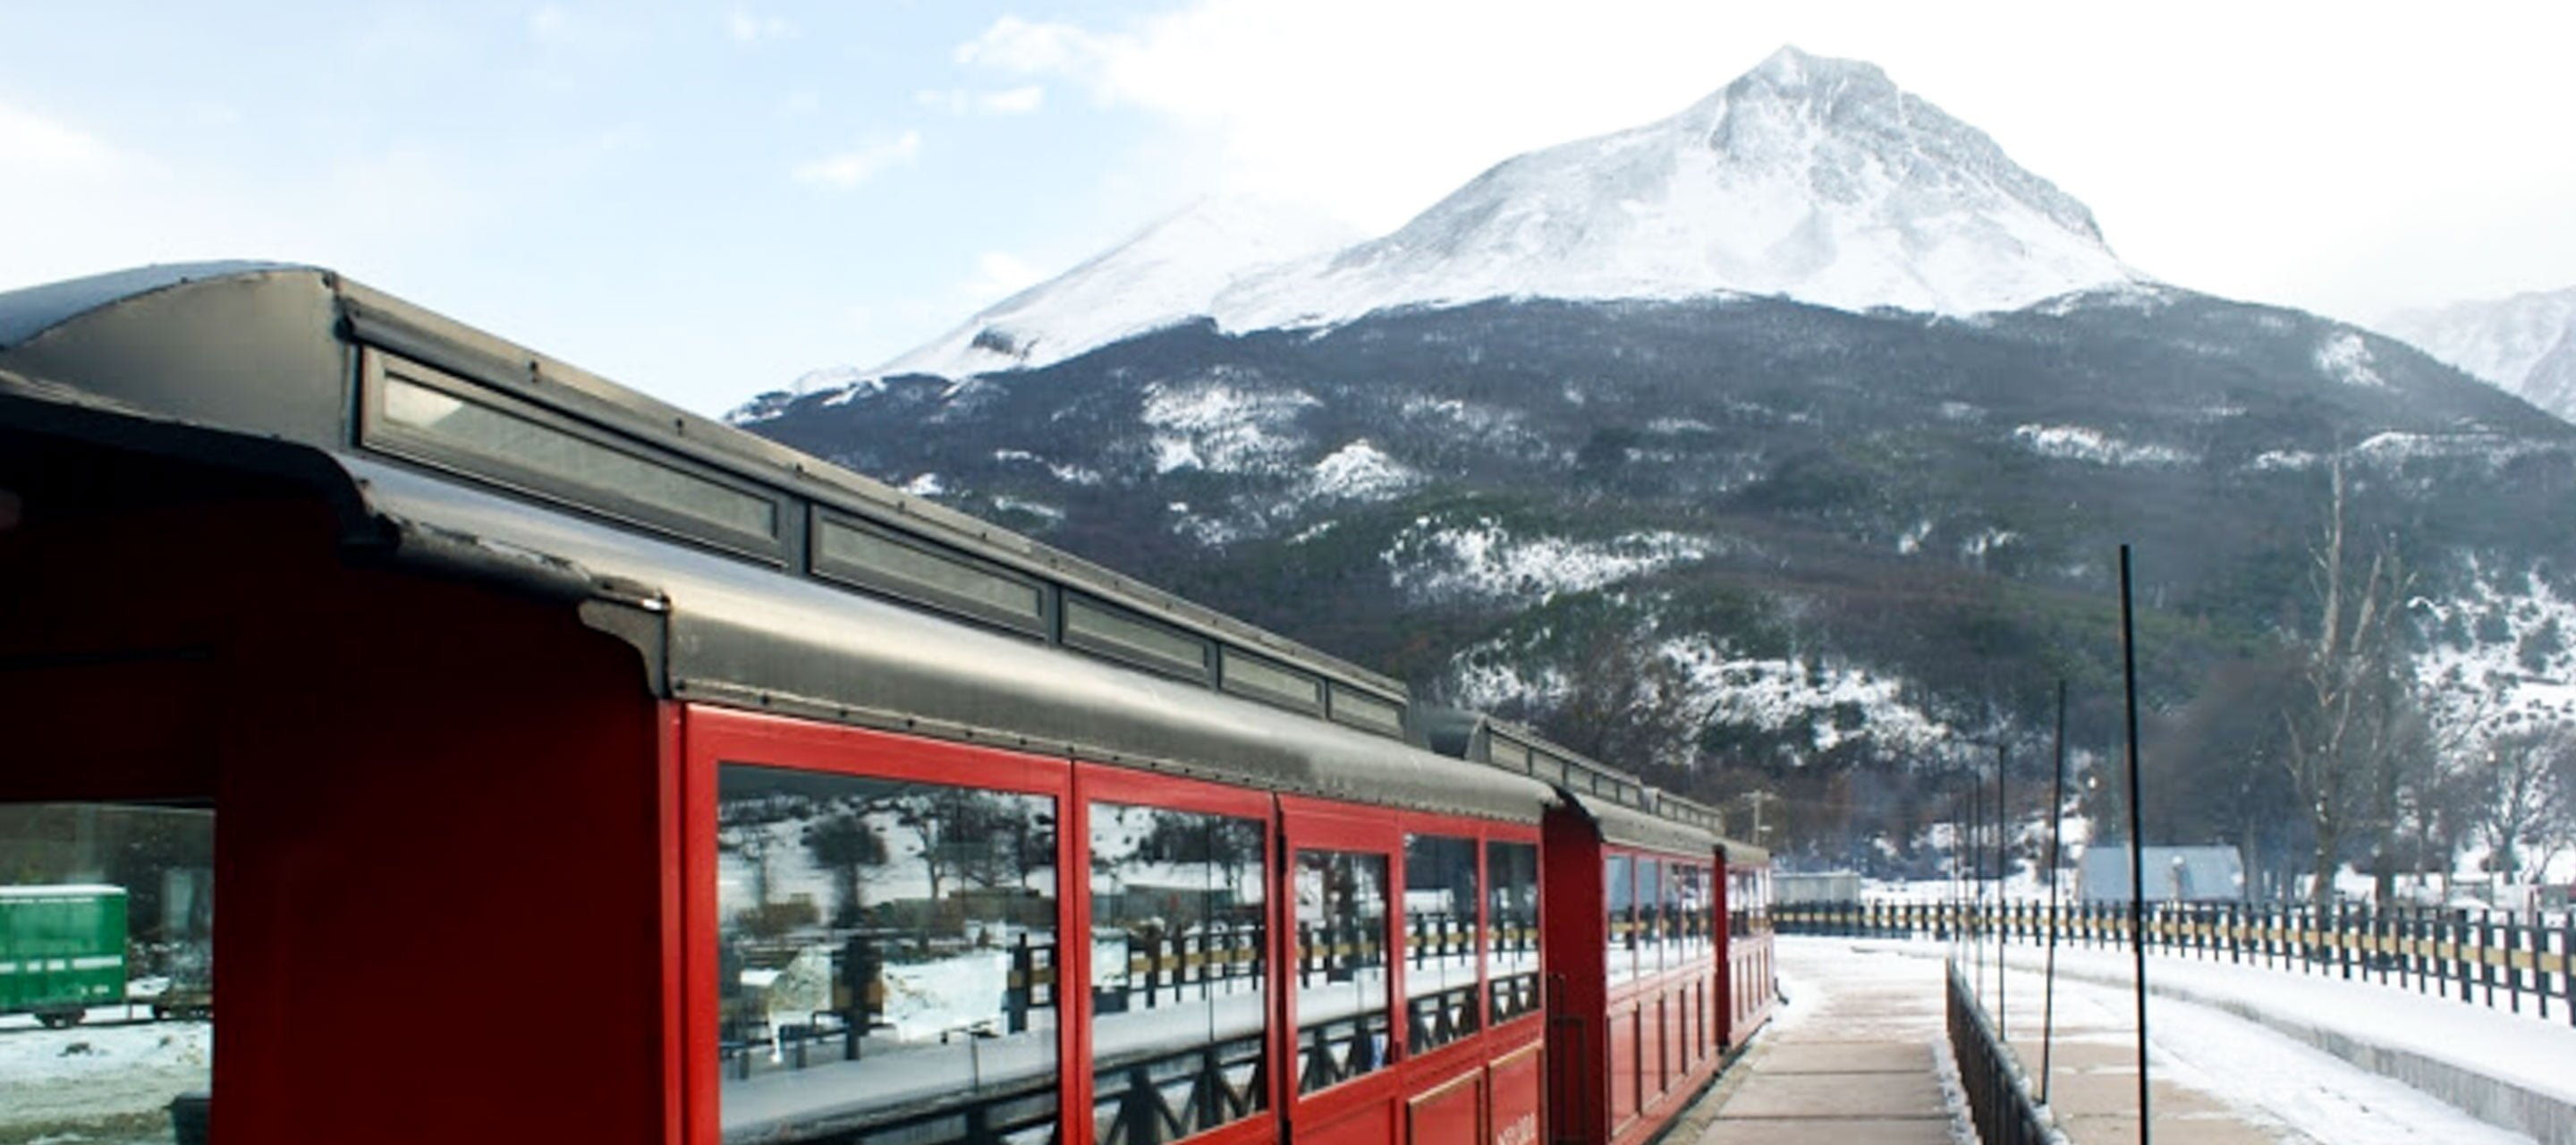 Train in front of Tierra del Fuego mountain